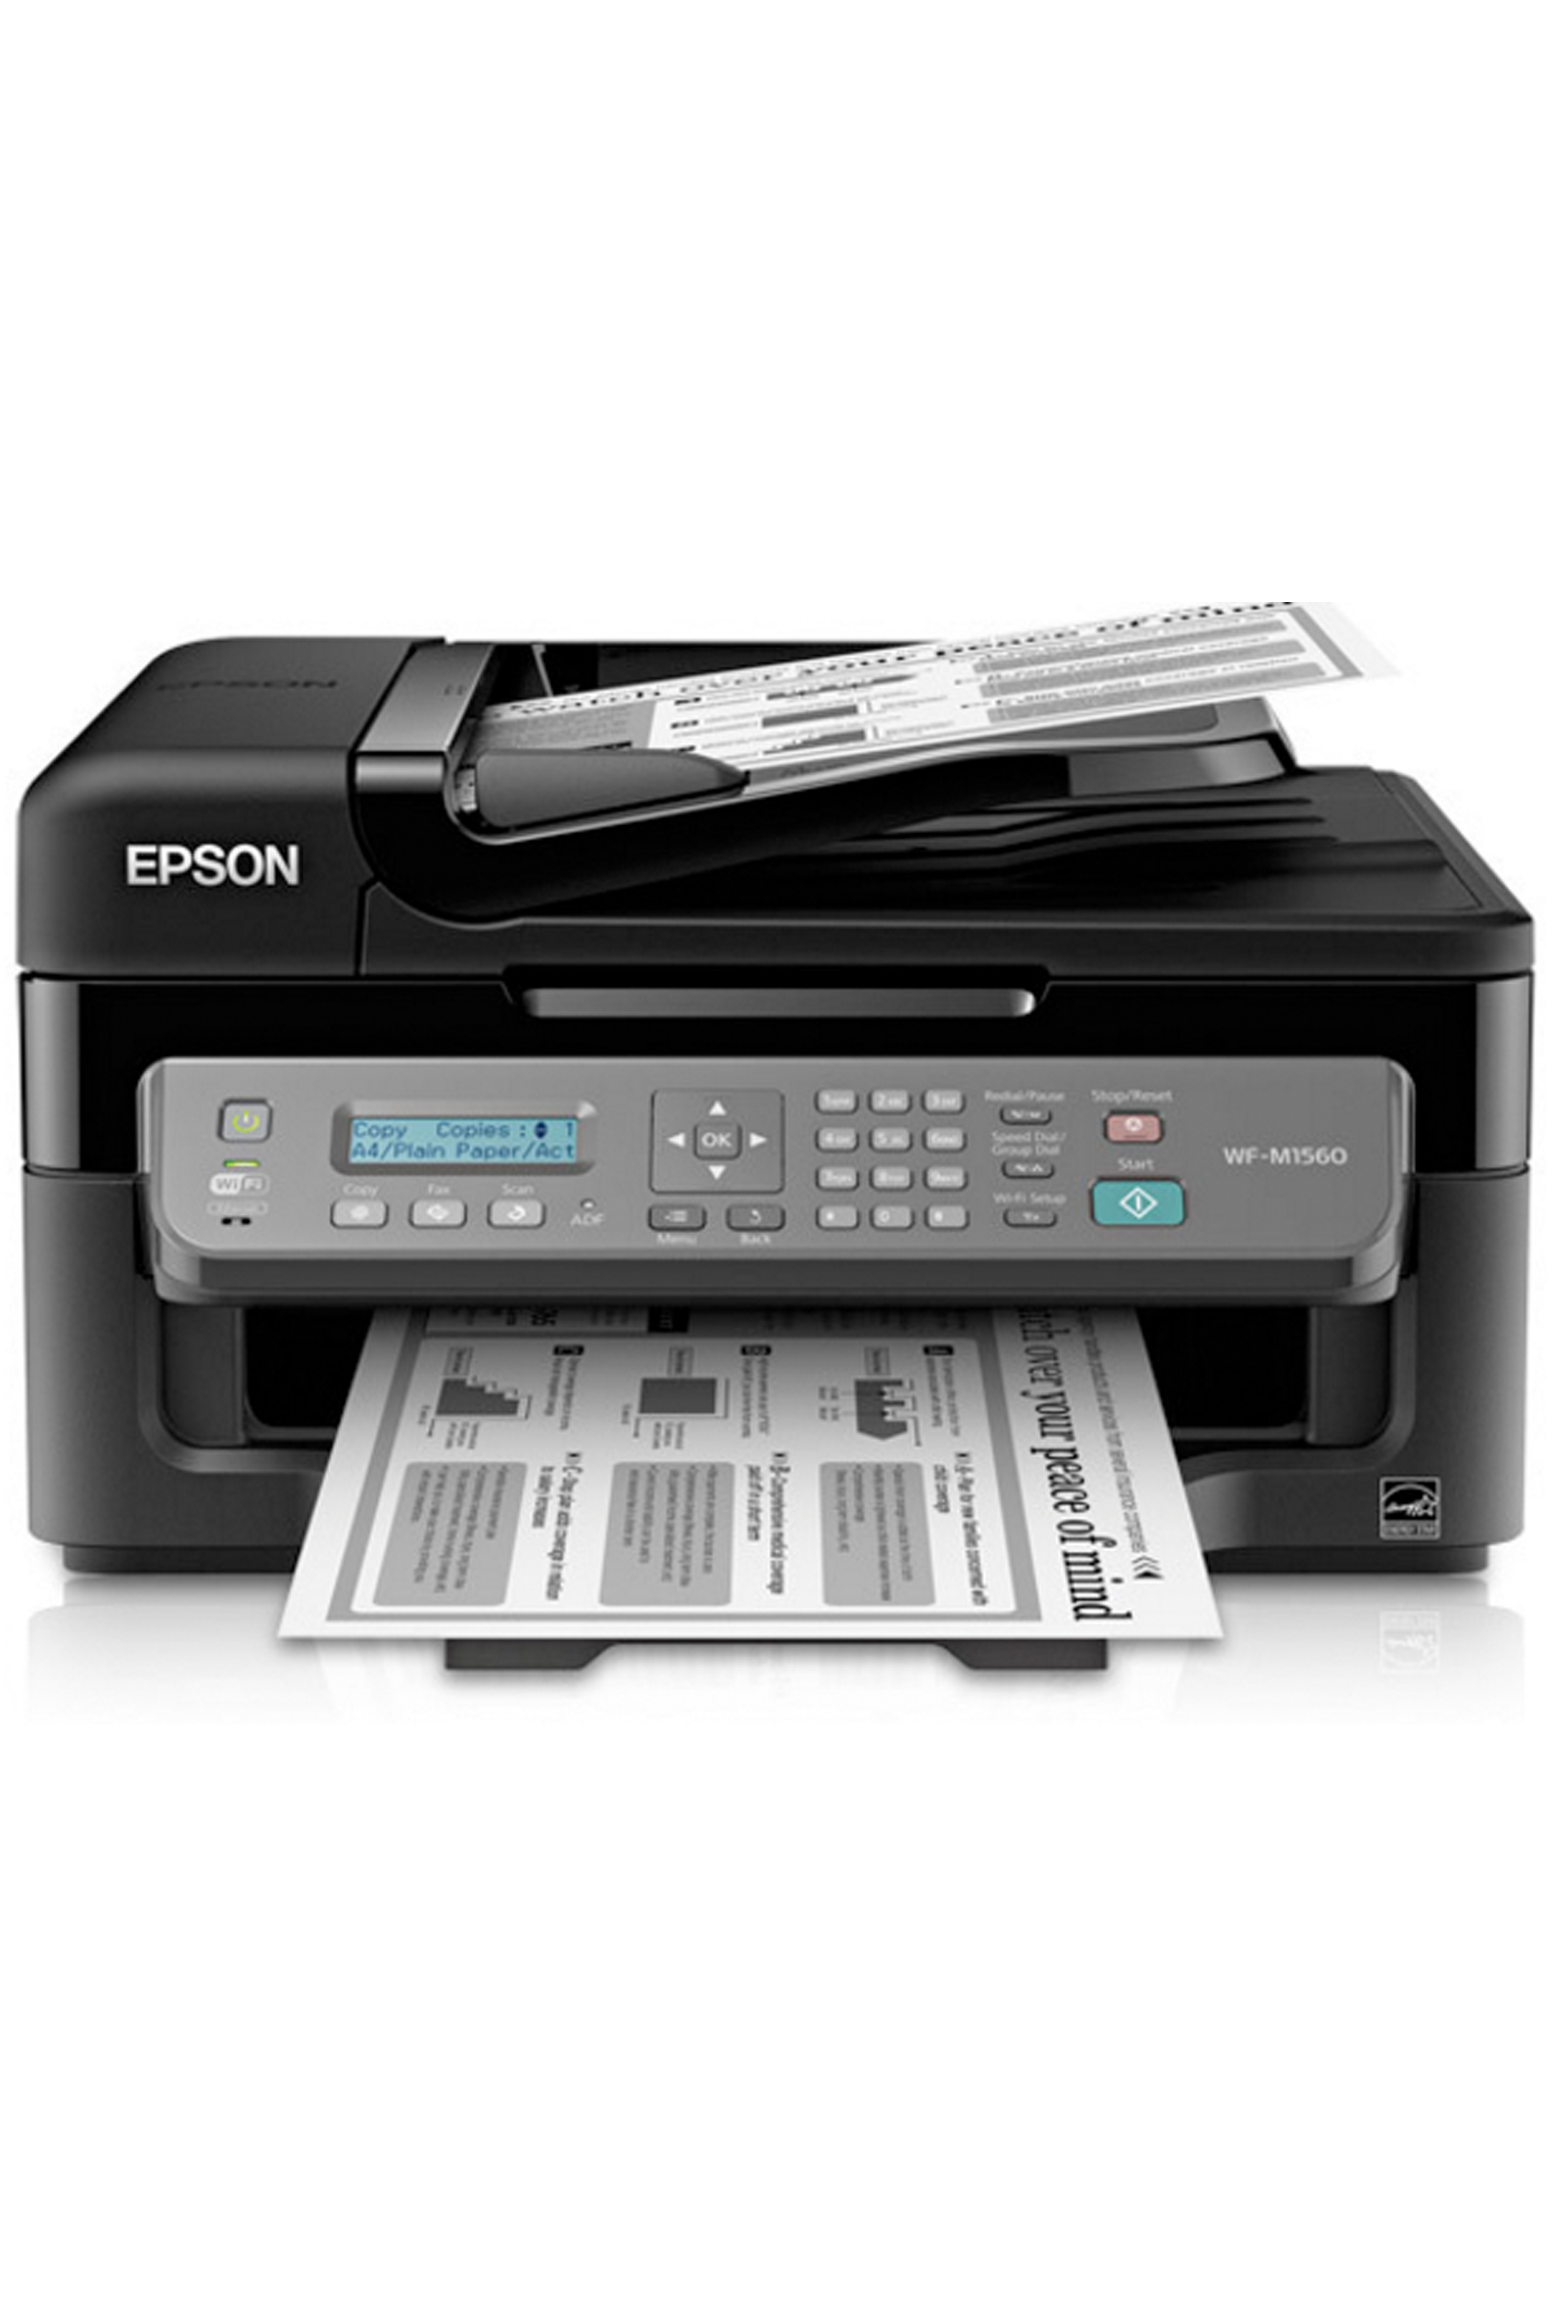 Epson WorkForce WF-M1560 Monochrome Multifunction Printer (34ppm)